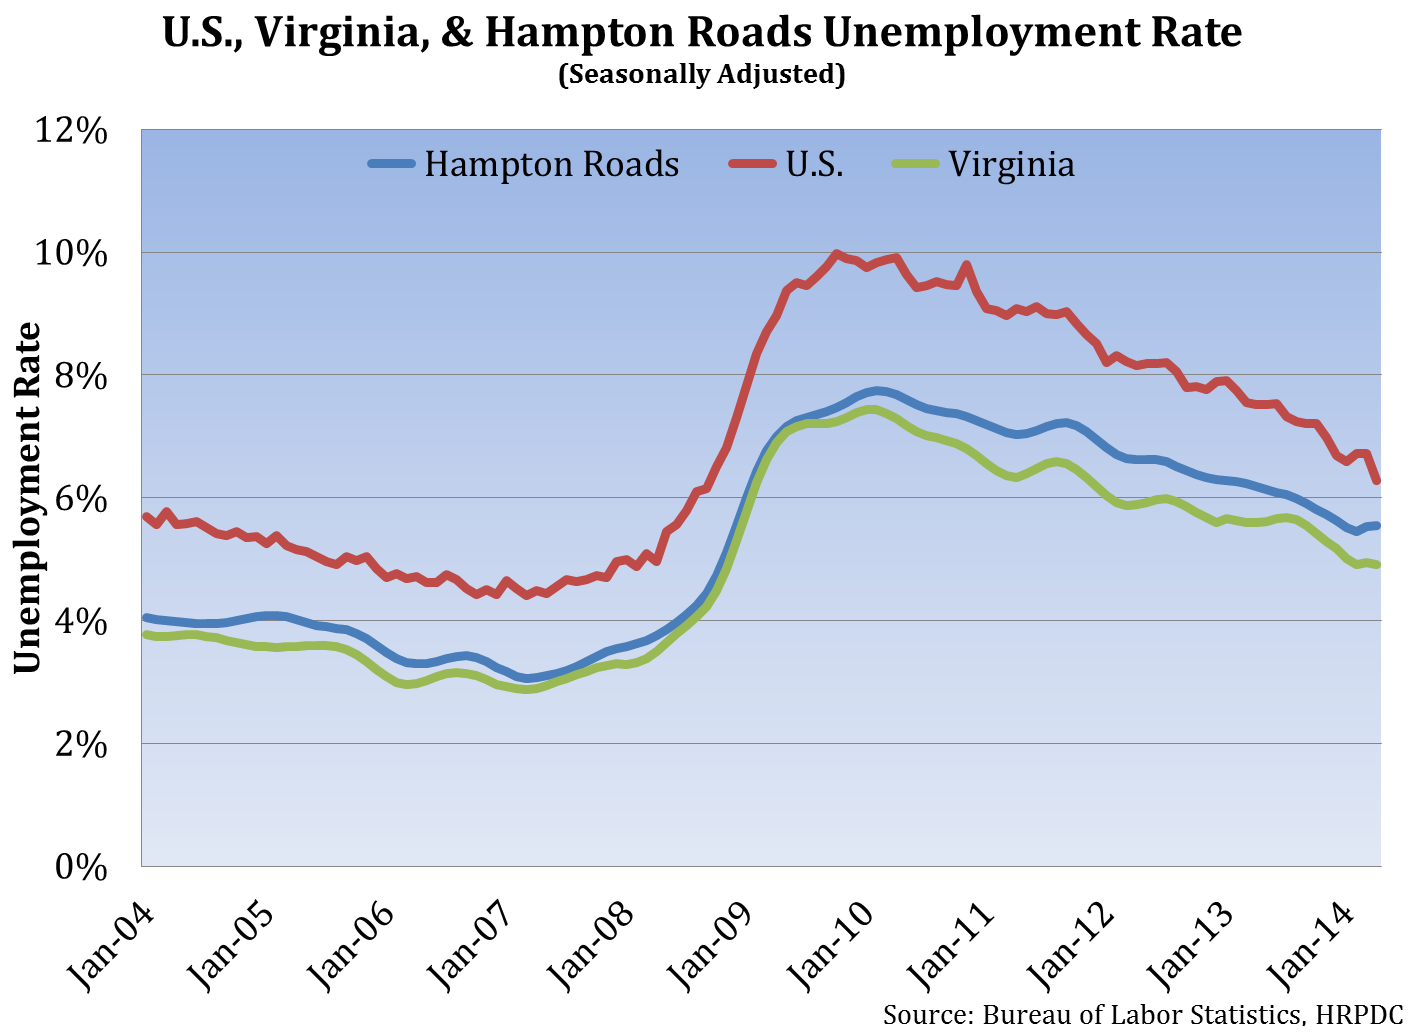 U. S., Virginia and Hampton Roads Unemployment Rate